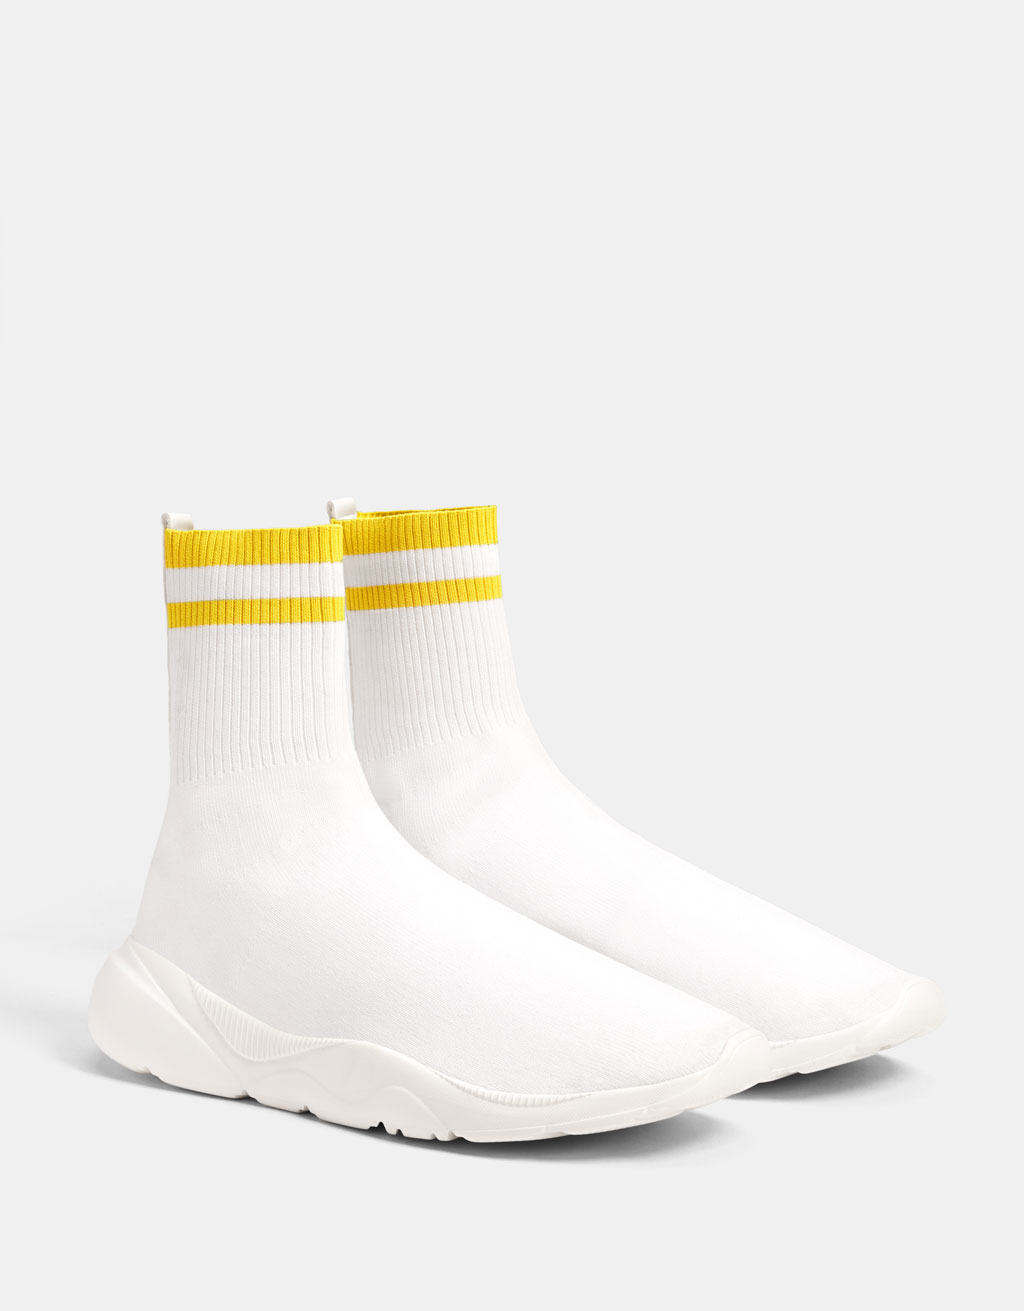 Men's high-top striped sock-style sneakers